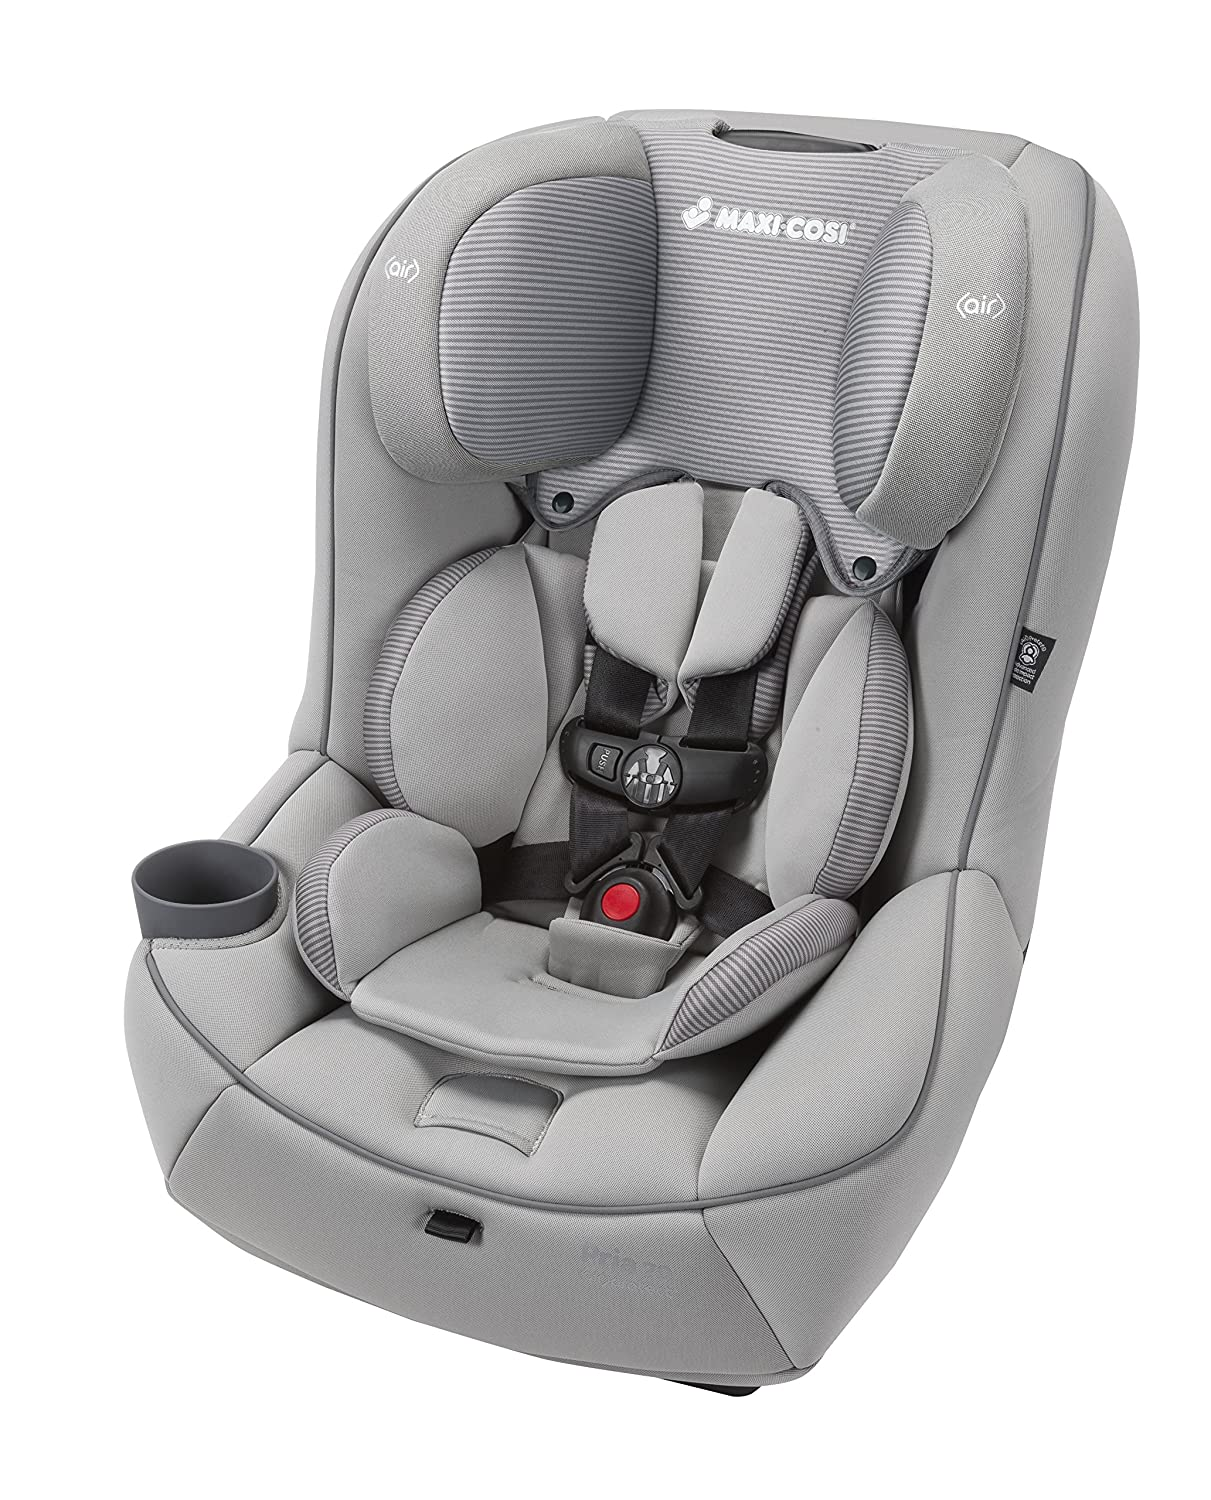 Finding The Best Travel Car Seat: 5 Reviews And Ultimate Guide 5